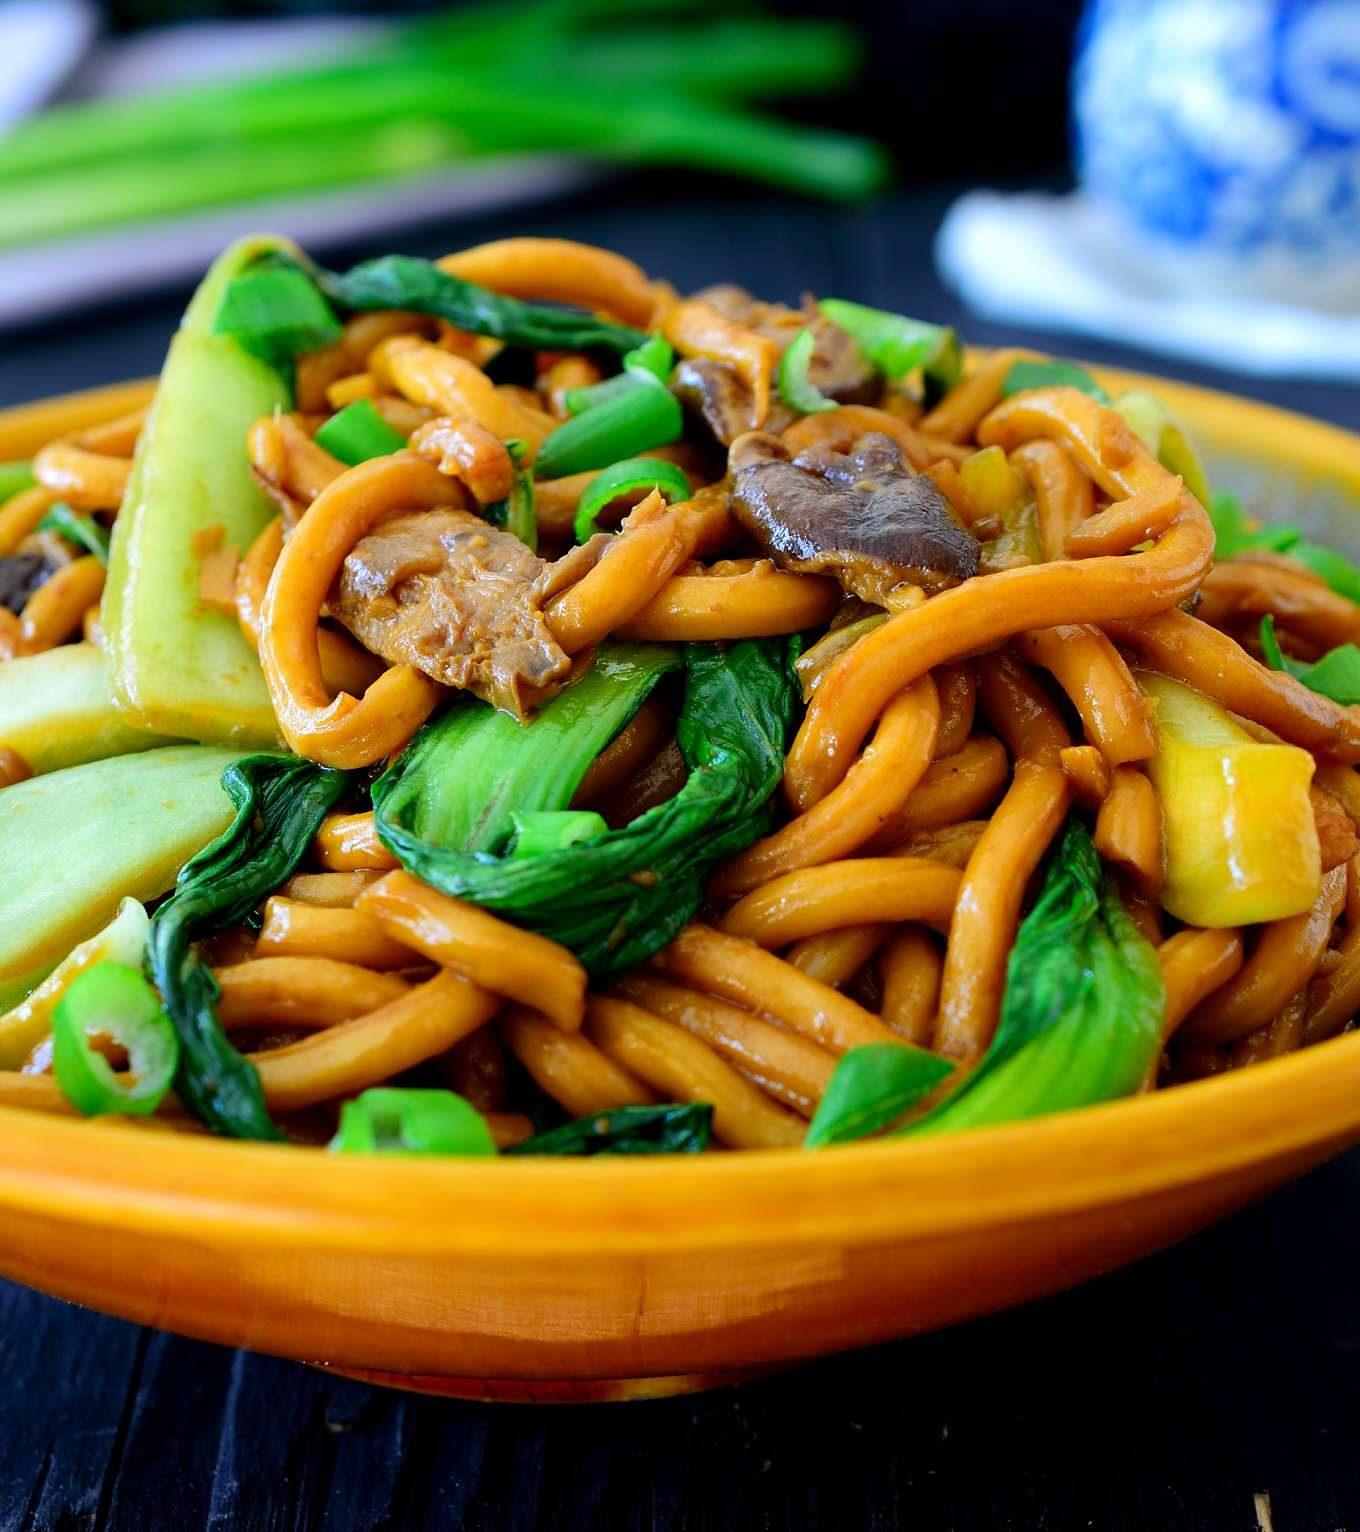 This vegetarian udon noodle recipe with bok choy and shiitake mushrooms is a delicious and filling easy udon noodle recipe that's ready in just 15 minutes and great for a weeknight dinner. Soft and slurpy udon noodles with crisp, fresh bok choy and meaty shiitake mushrooms dressed simply with soy sauce will satisfy every craving!